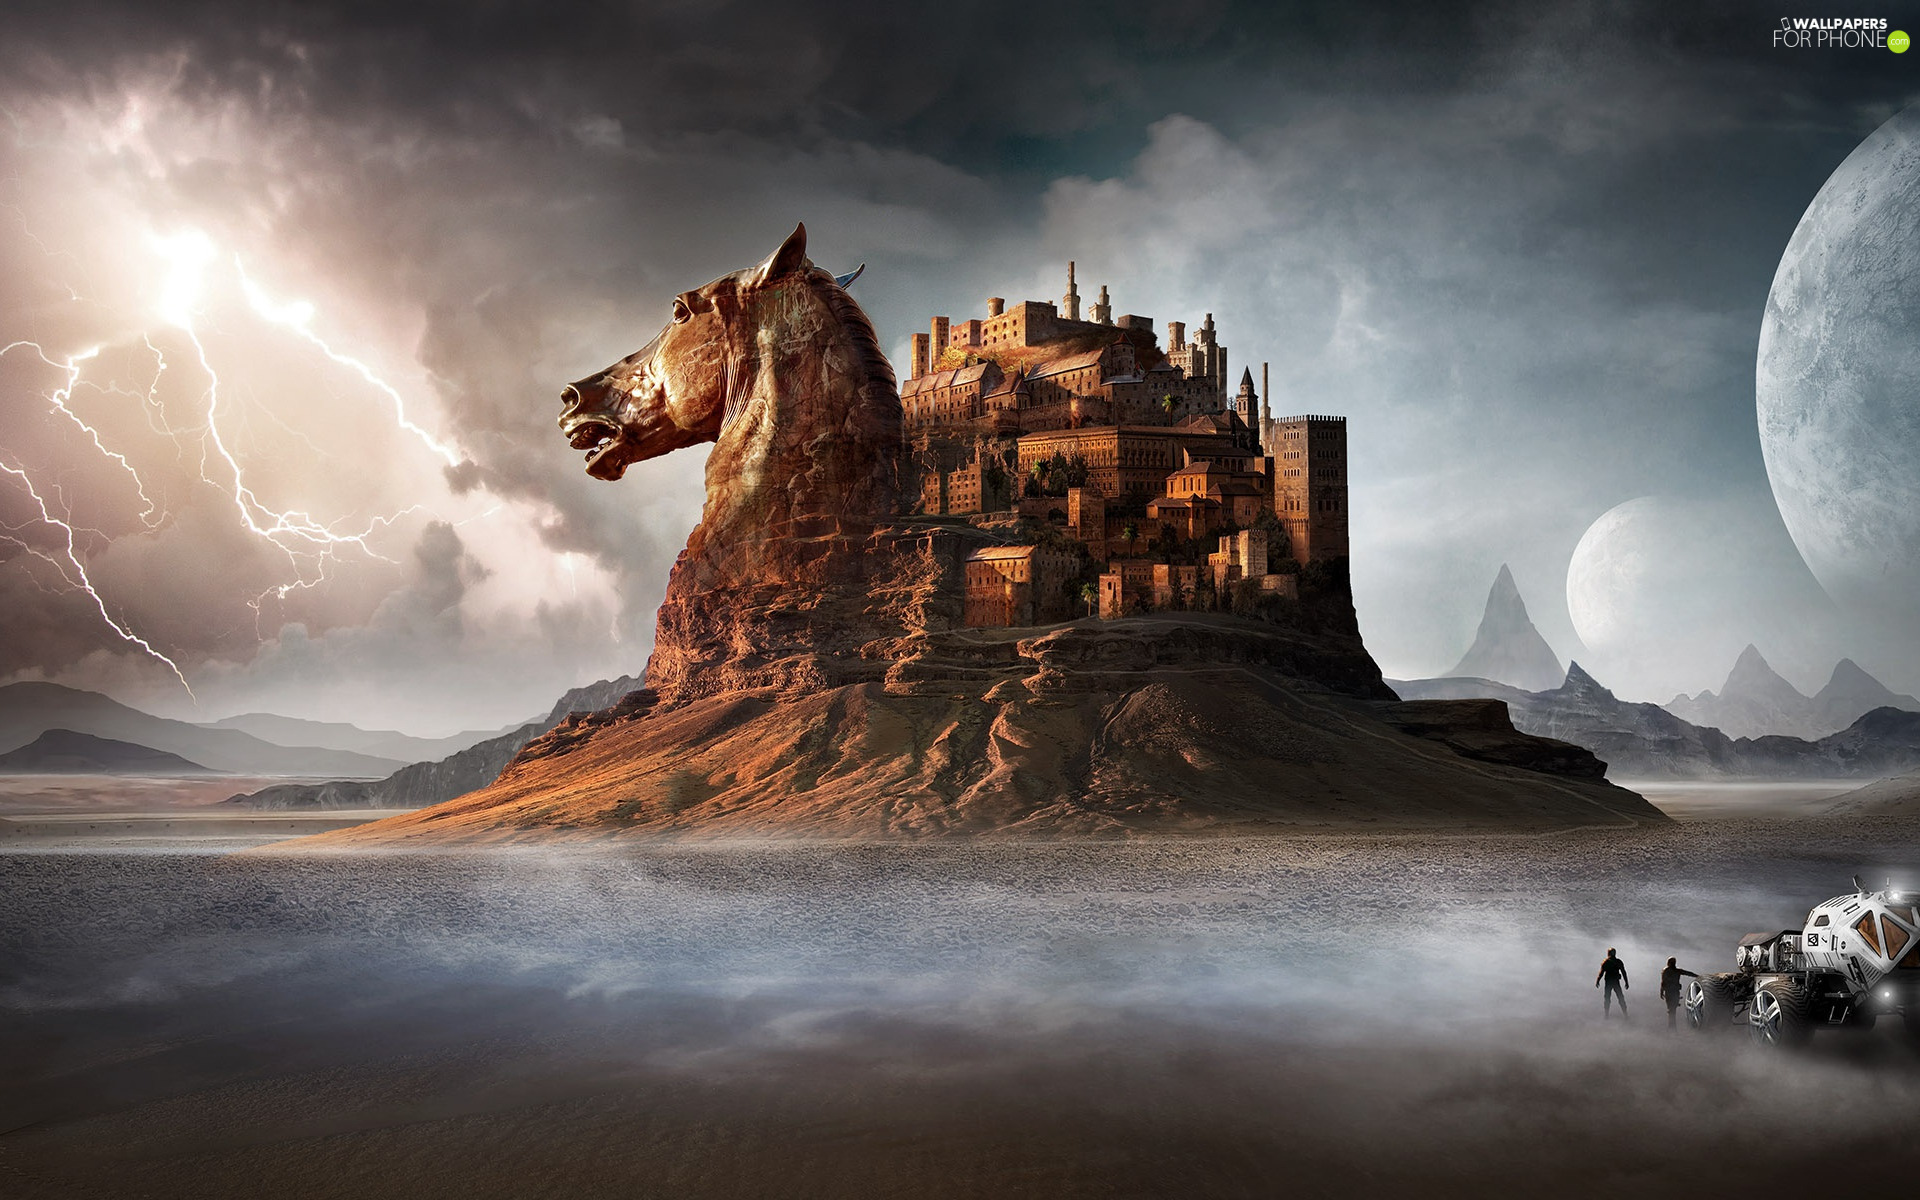 Automobile, figure, Castle, clouds, Rocks, fantasy, Horse, fantasy, Lightning, Characters